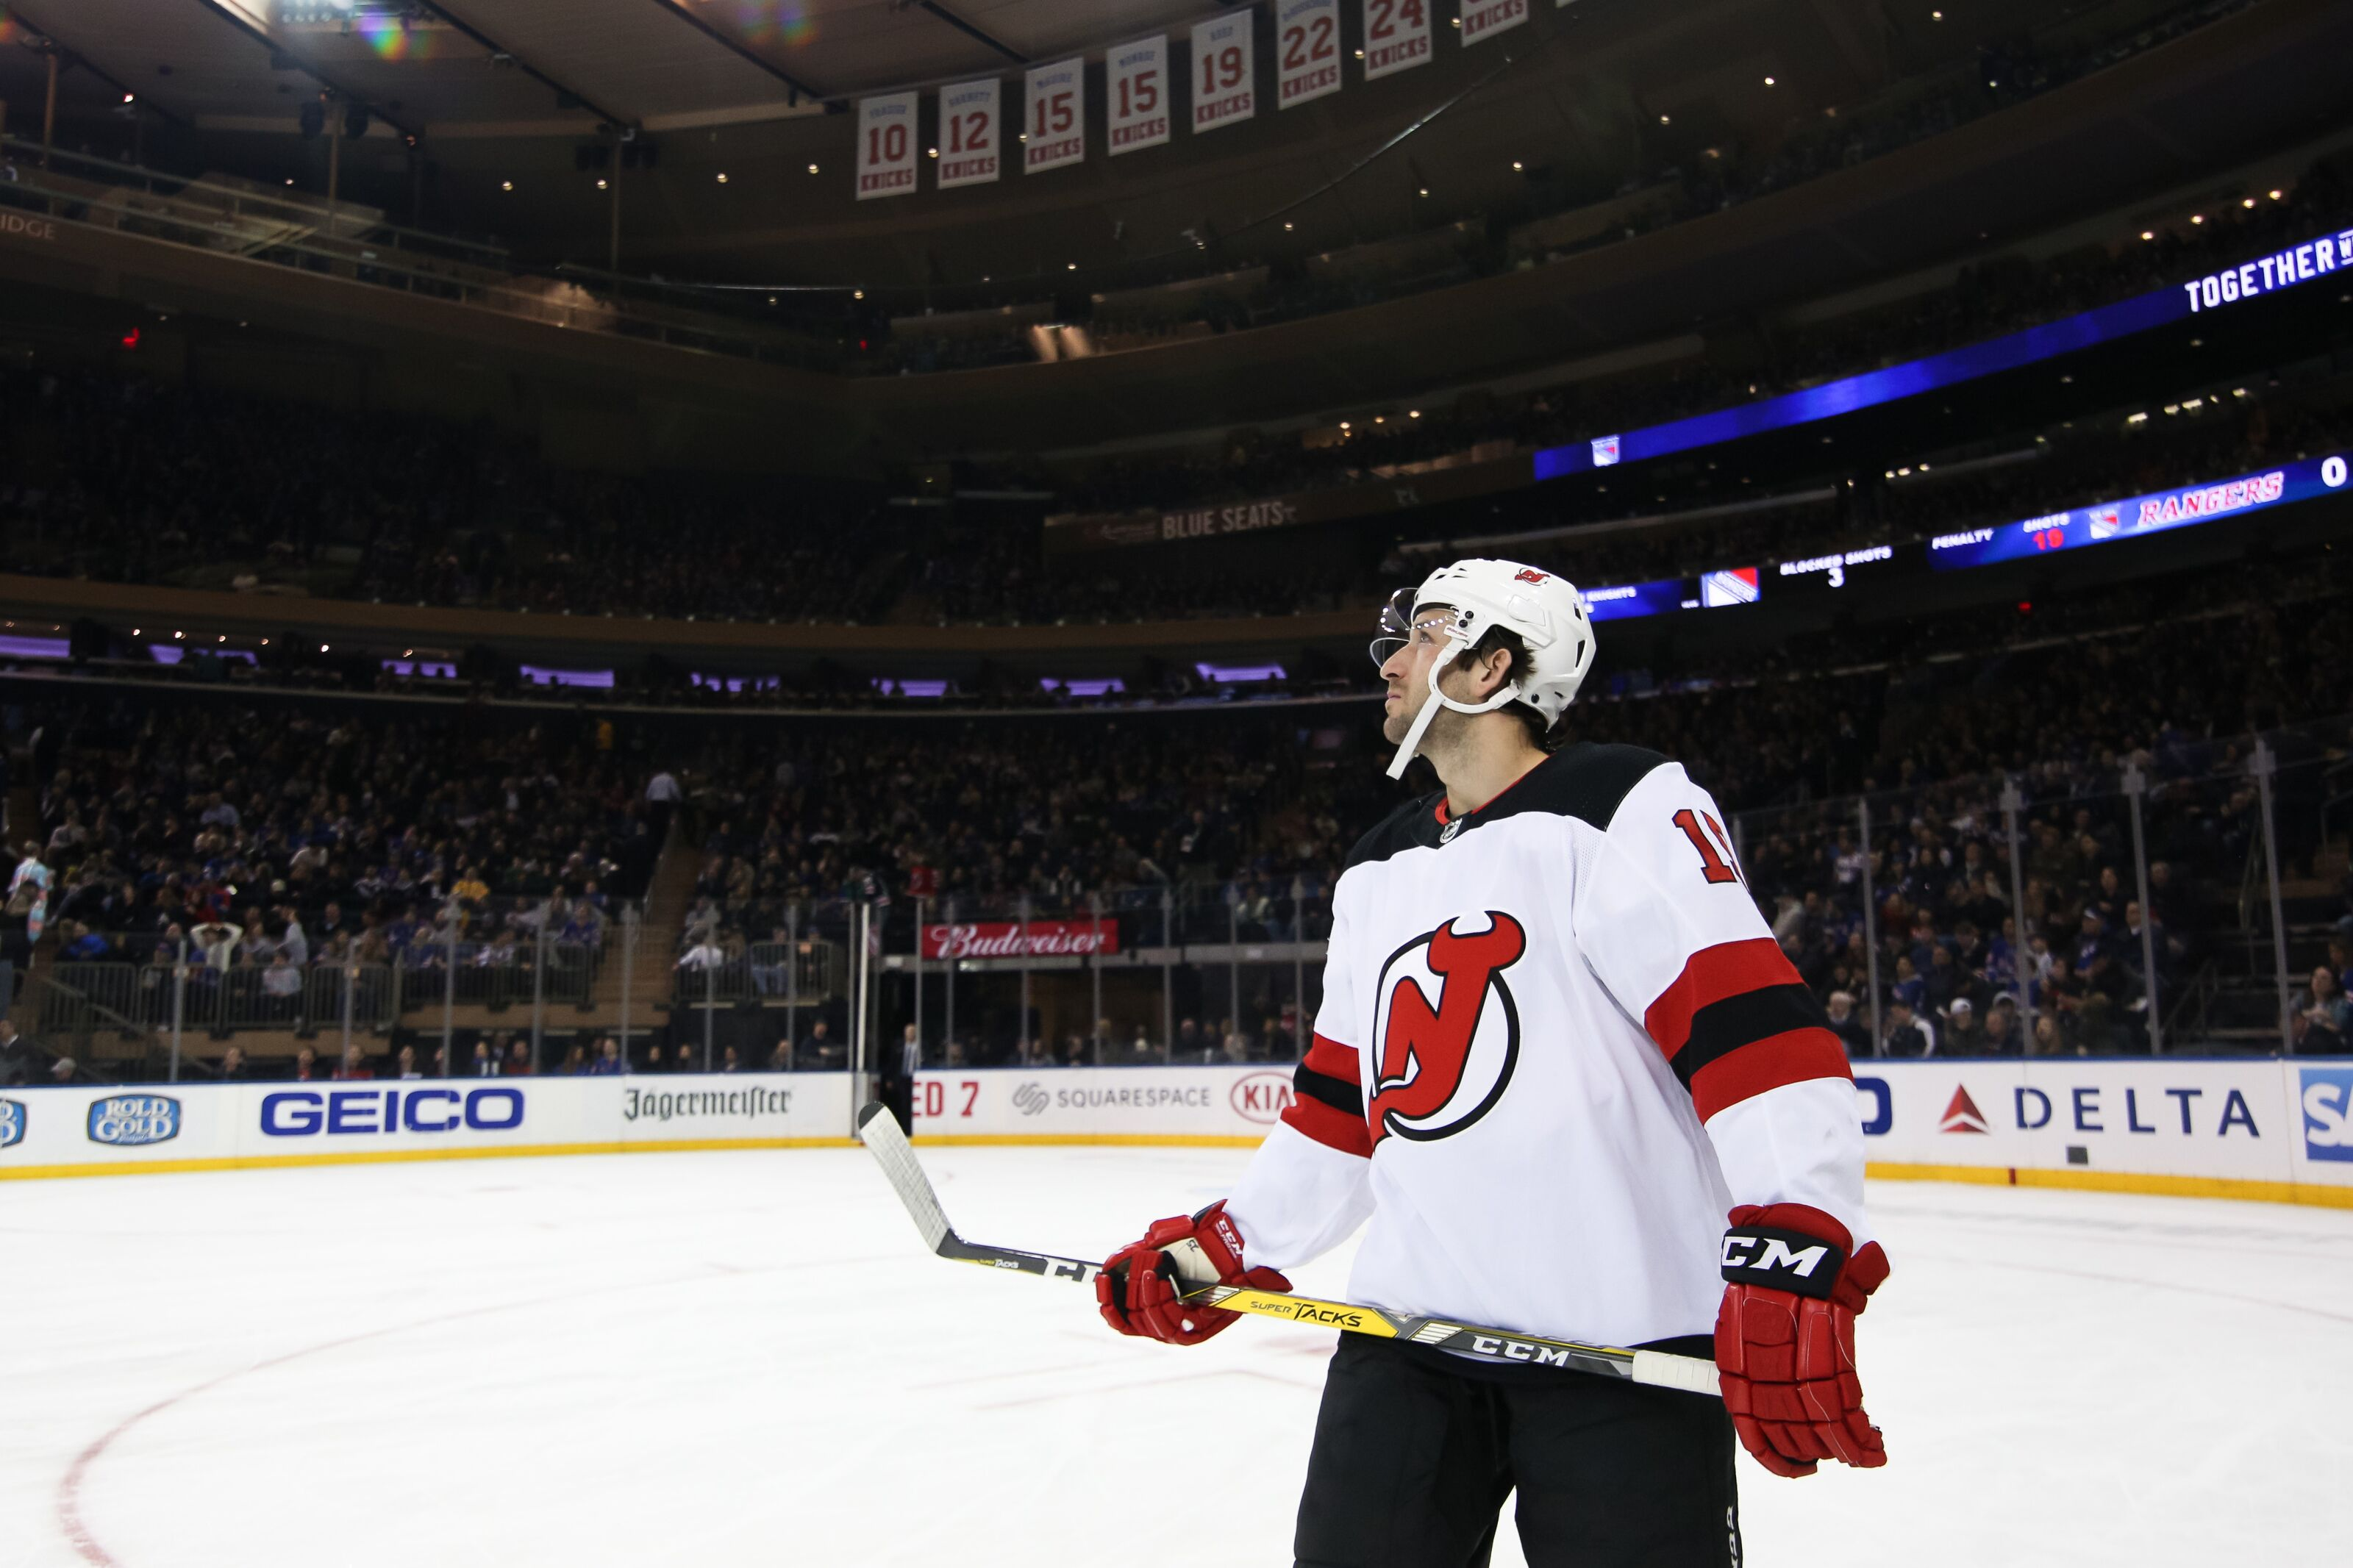 New Jersey Devils  Nick Lappin Lost His Final Chance 2a28142e5